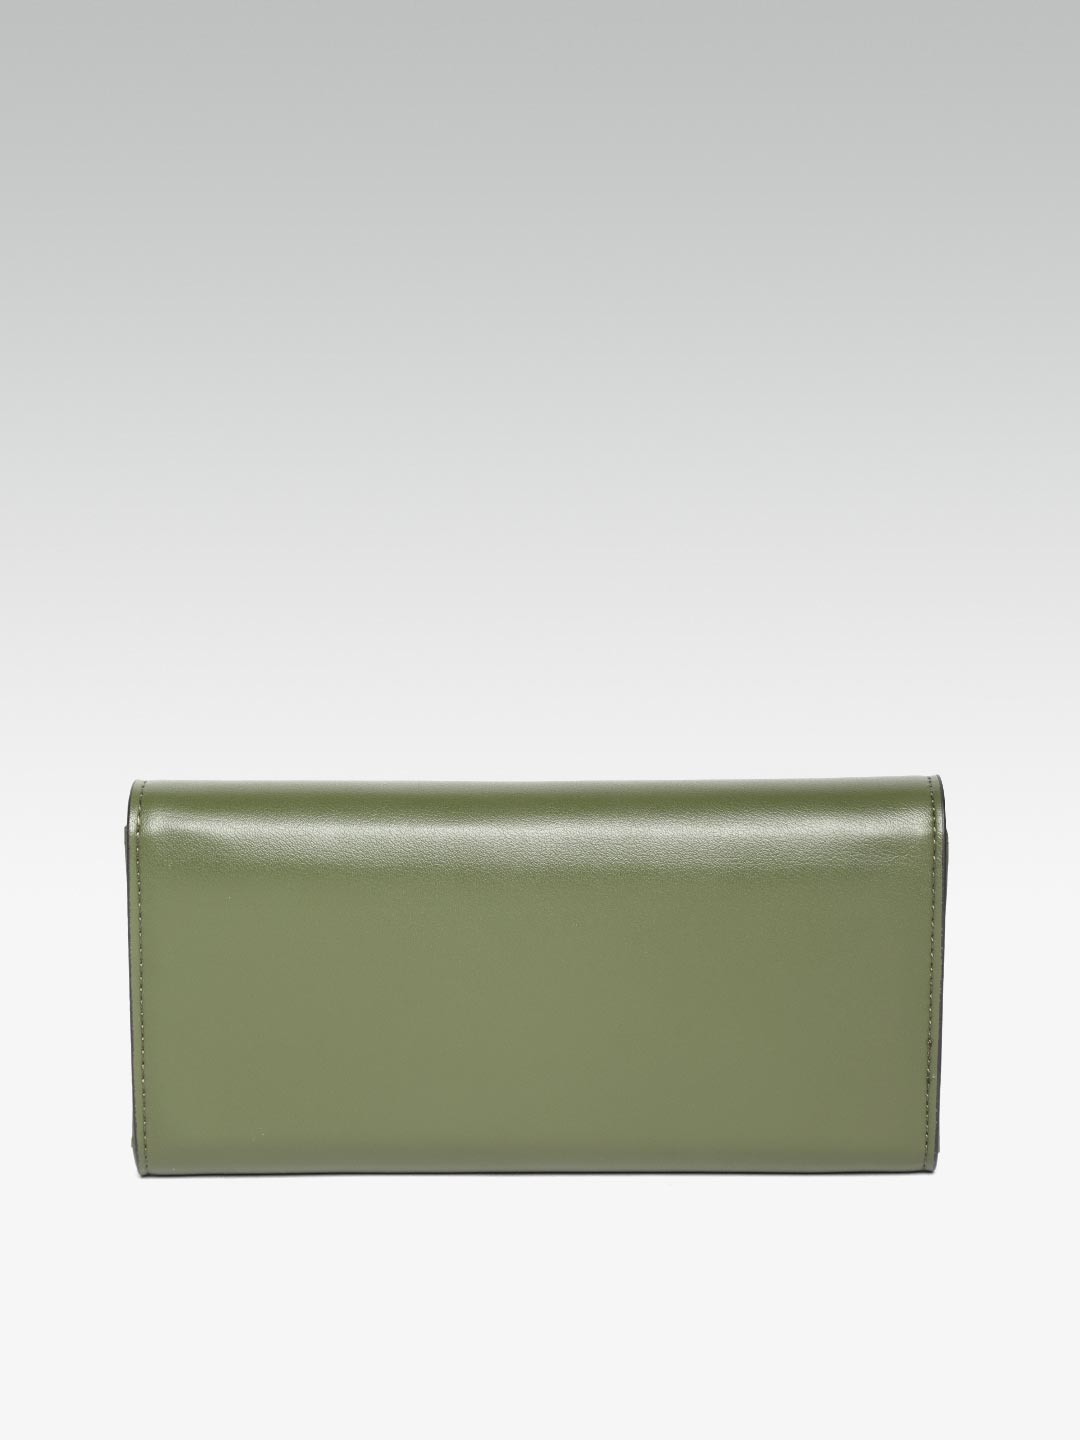 Wallets and Makeup Pouches-The Color Of Envy Wallet4